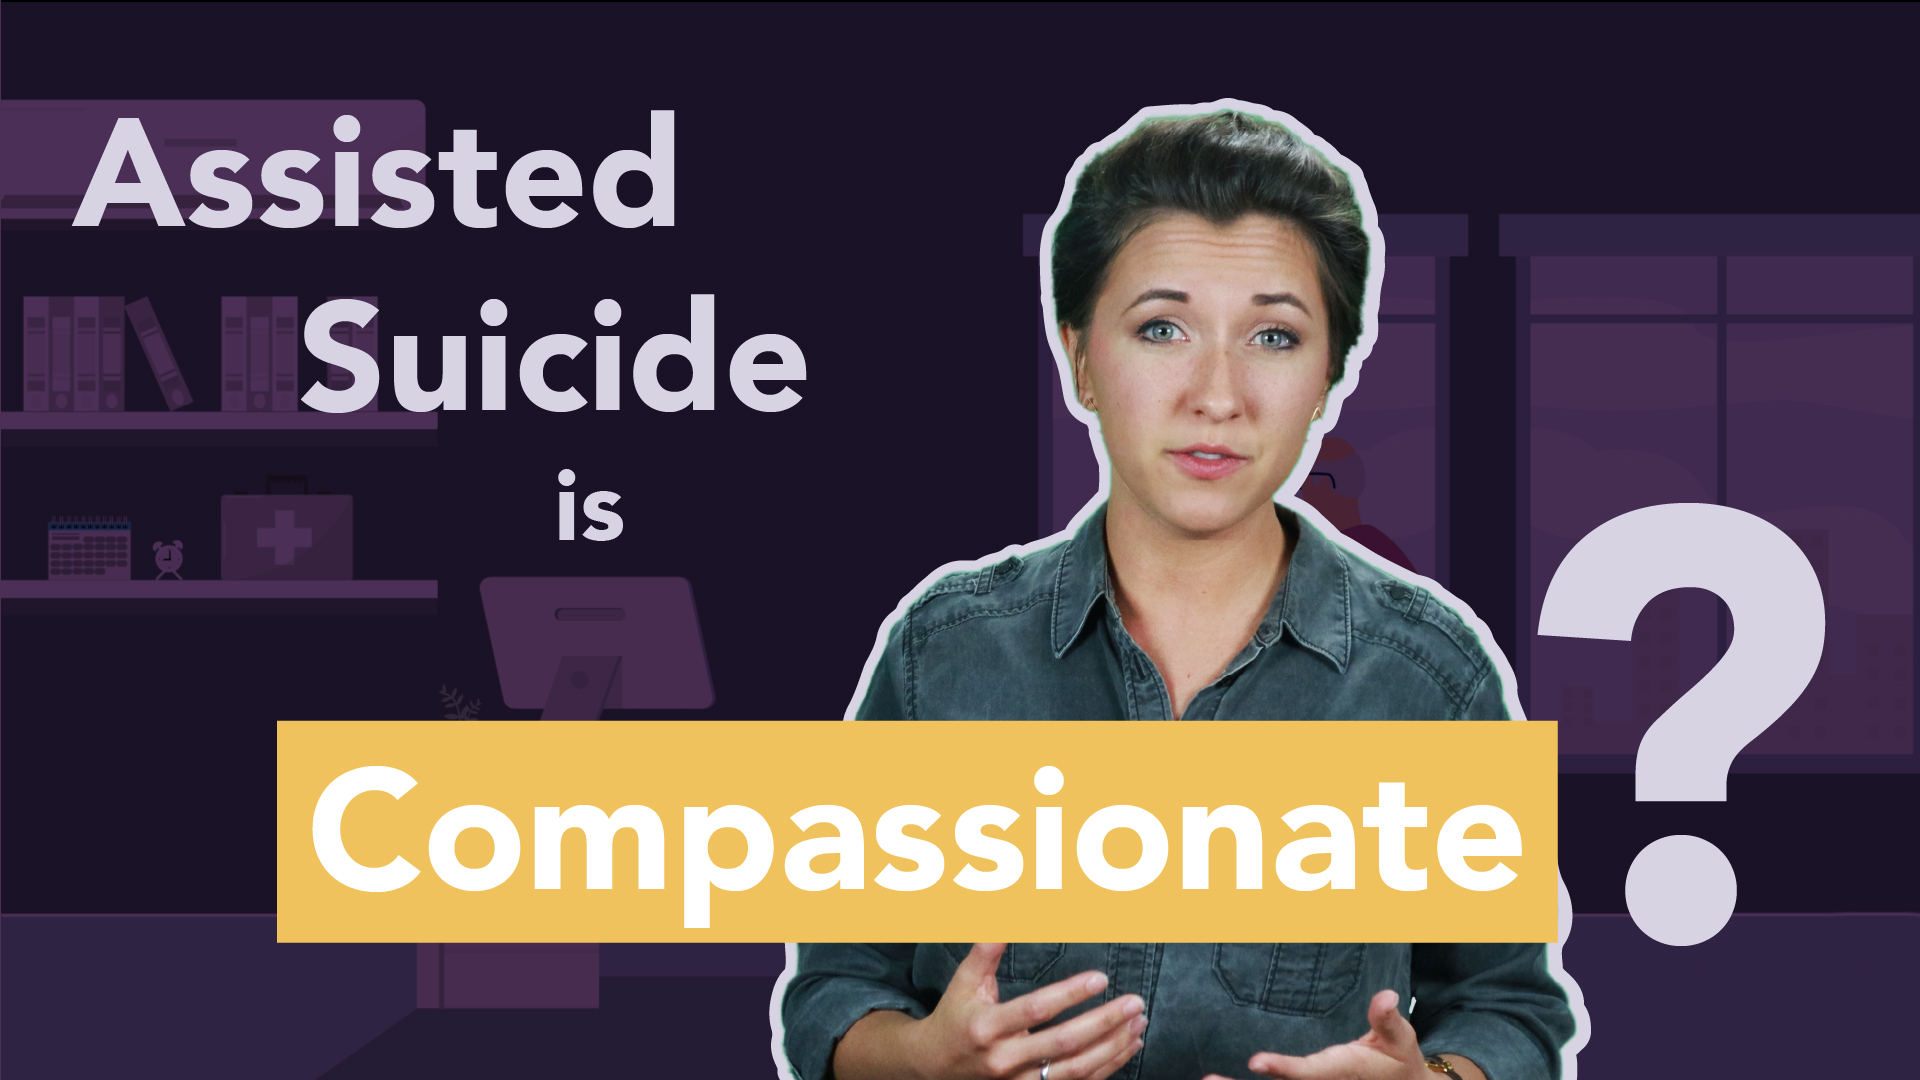 Assisted Suicide is Compassionate